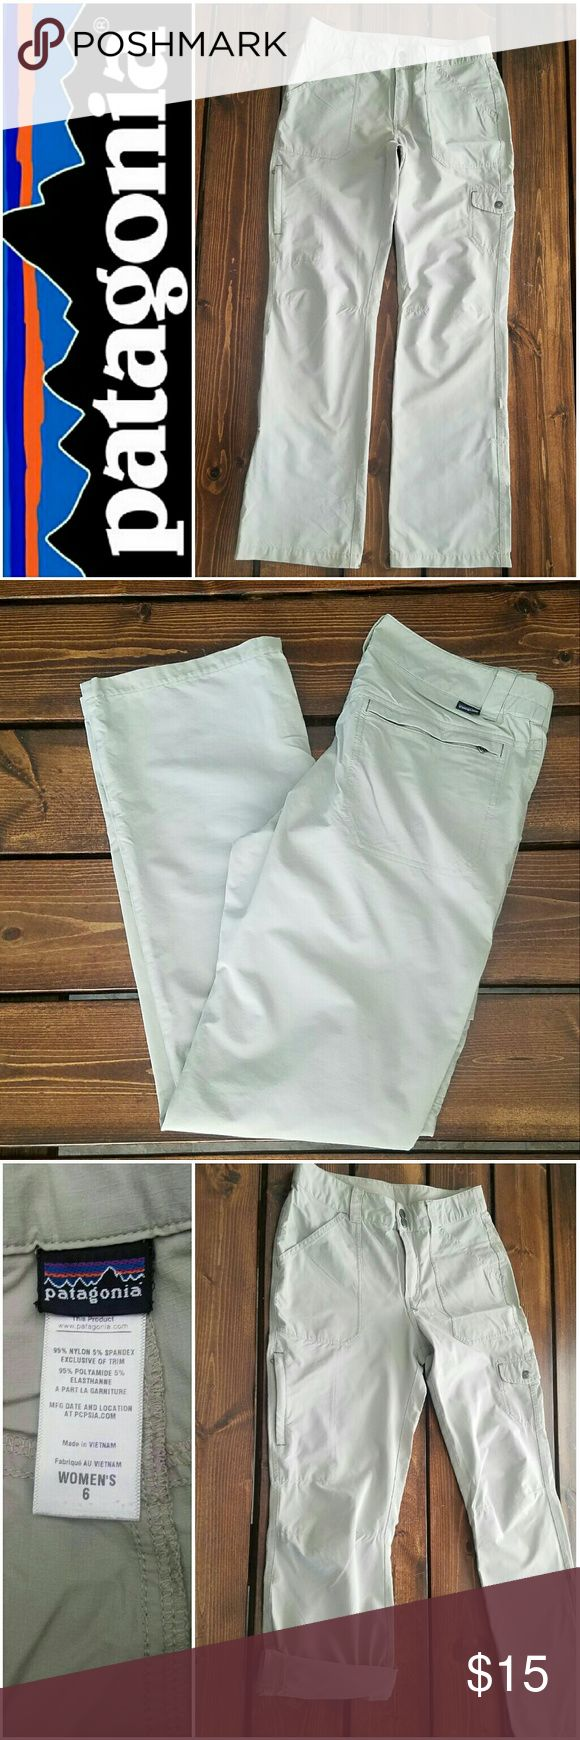 """Patagonia Women's Hiking Pants - 6 Lightweight with pockets. Can be rolled into capris. 31"""" inseam. Patagonia Pants"""